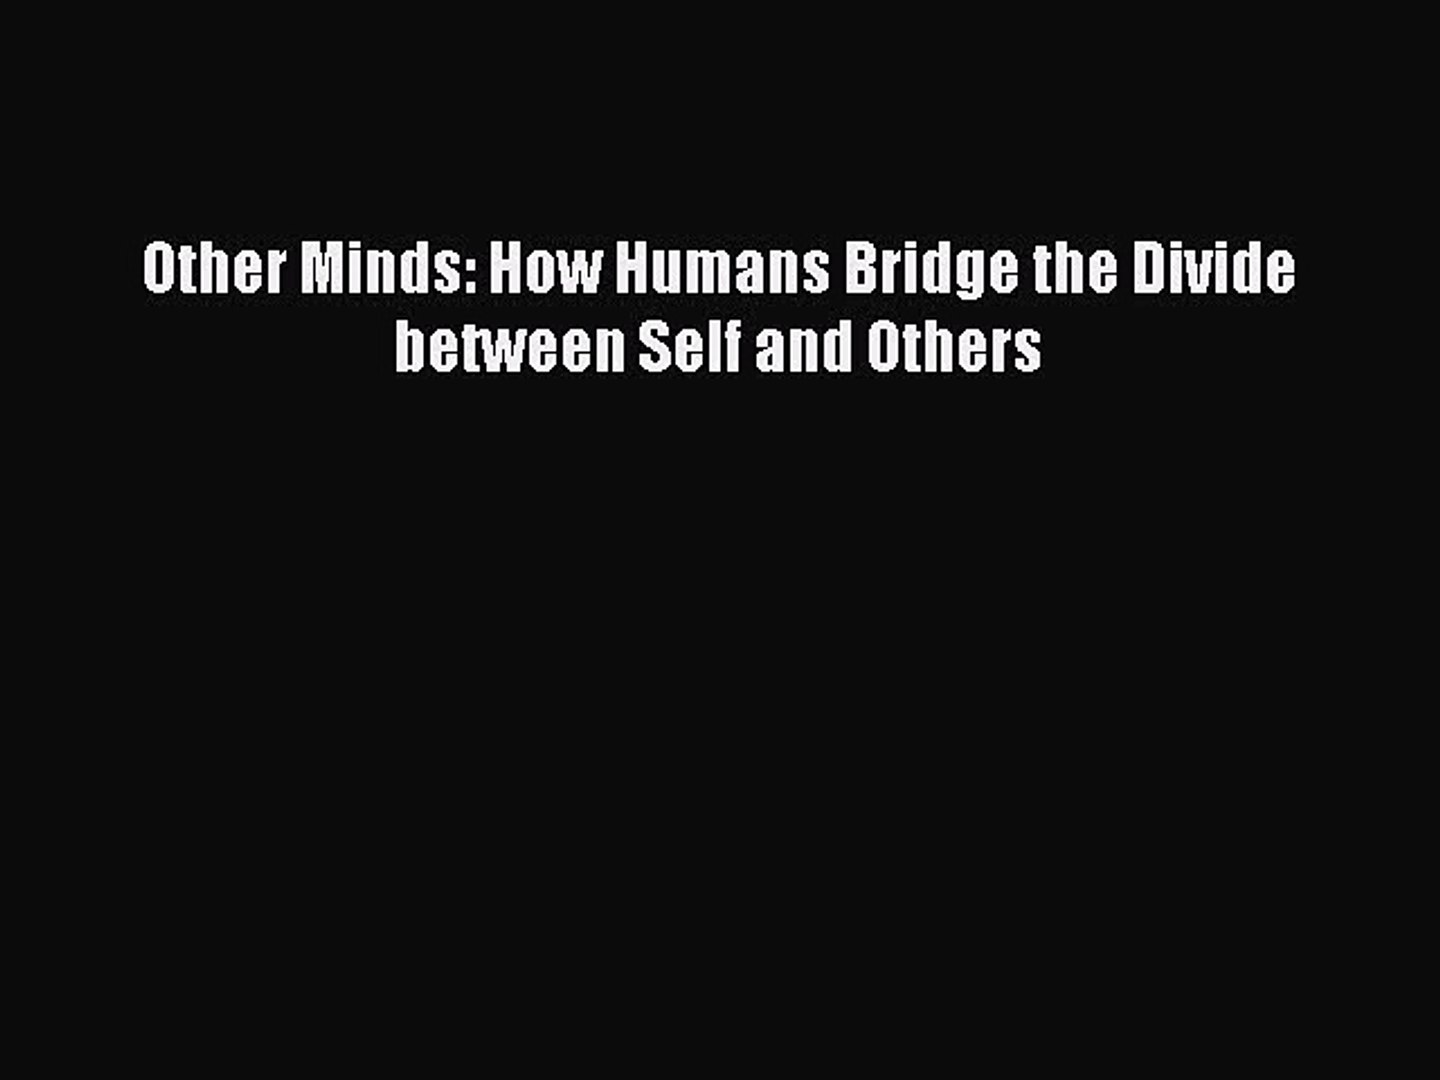 Read Book Other Minds: How Humans Bridge the Divide between Self and Others ebook textbooks